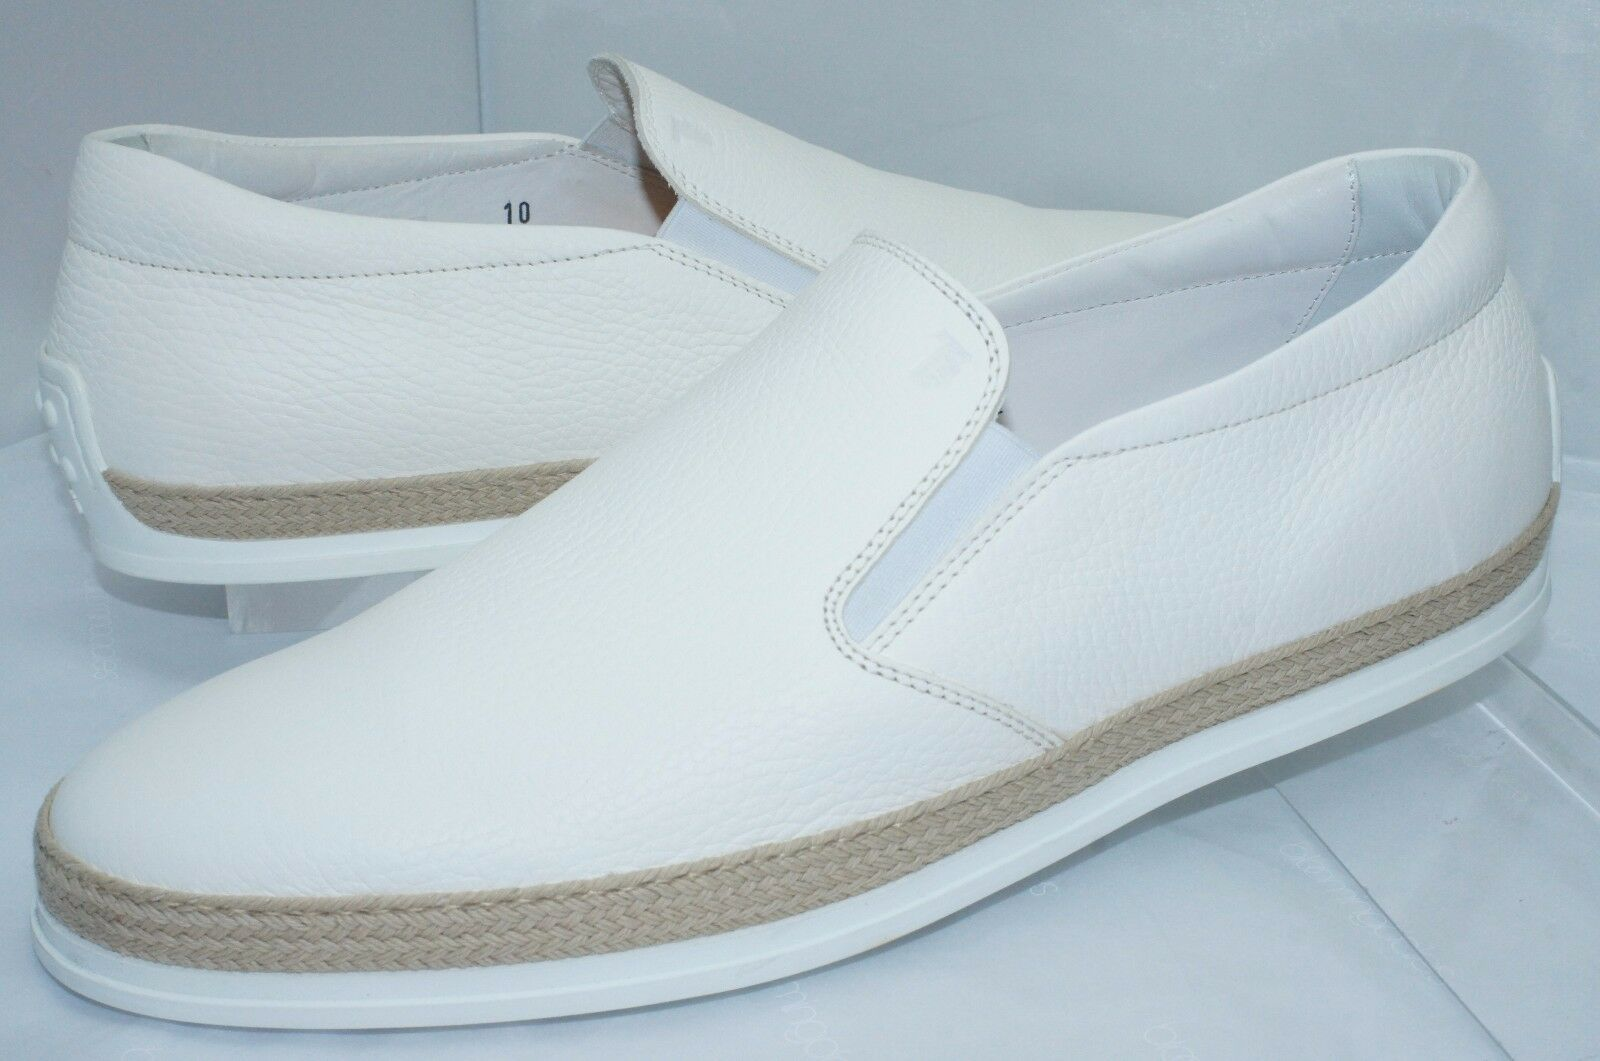 New Tod's Men's Tennis Shoes Loafers White Driver Size 10 Slip Ons Leather